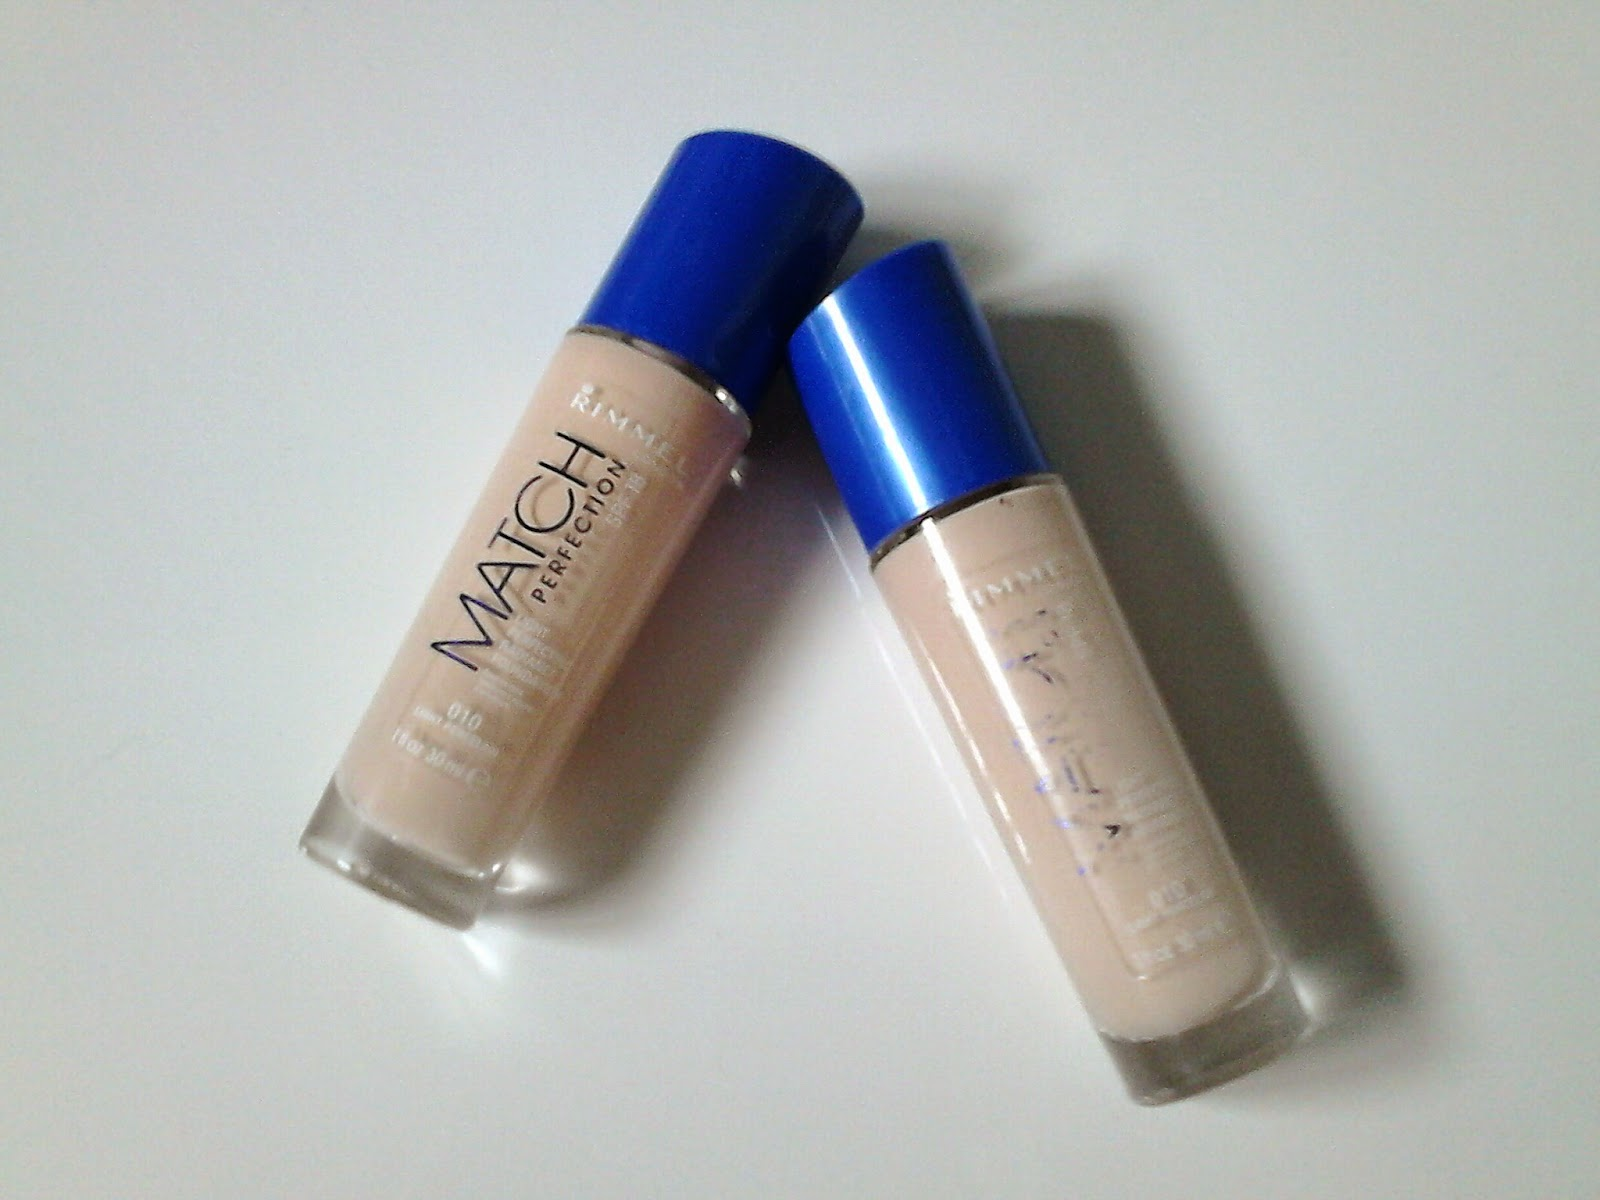 Rimmel Match Perfection Foundation